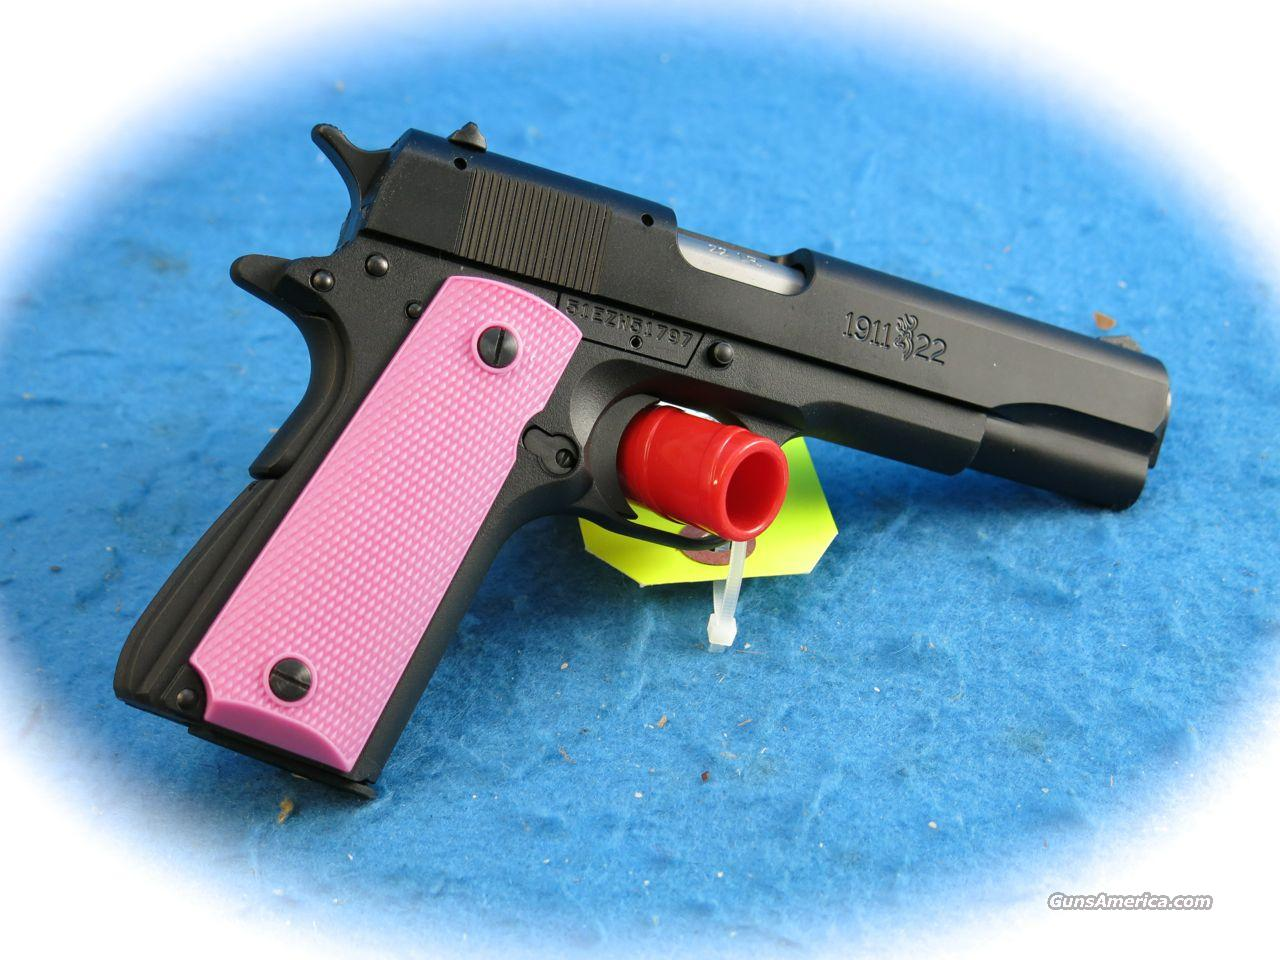 **SALE!!** Browning 1911-22A1 .22LR Pistol Pink **New**  Guns > Pistols > Browning Pistols > Other Autos